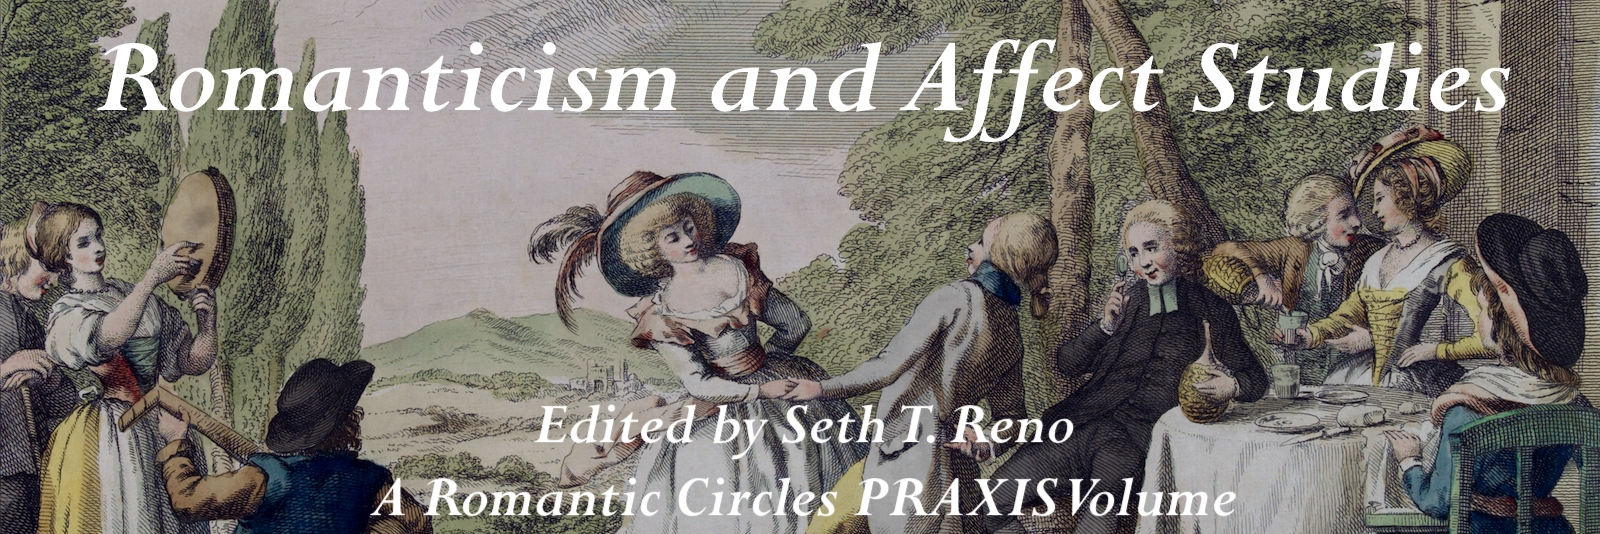 Romantic Circles  A Refereed Scholarly Website Devoted To The Study  This Volume Presents New Work By Scholars Working At The Intersection Of  British Romanticism And Affect Studies Each Essay Takes A Different  Approach To  High School Memories Essay also Persuasive Essay Topics For High School  Example Proposal Essay